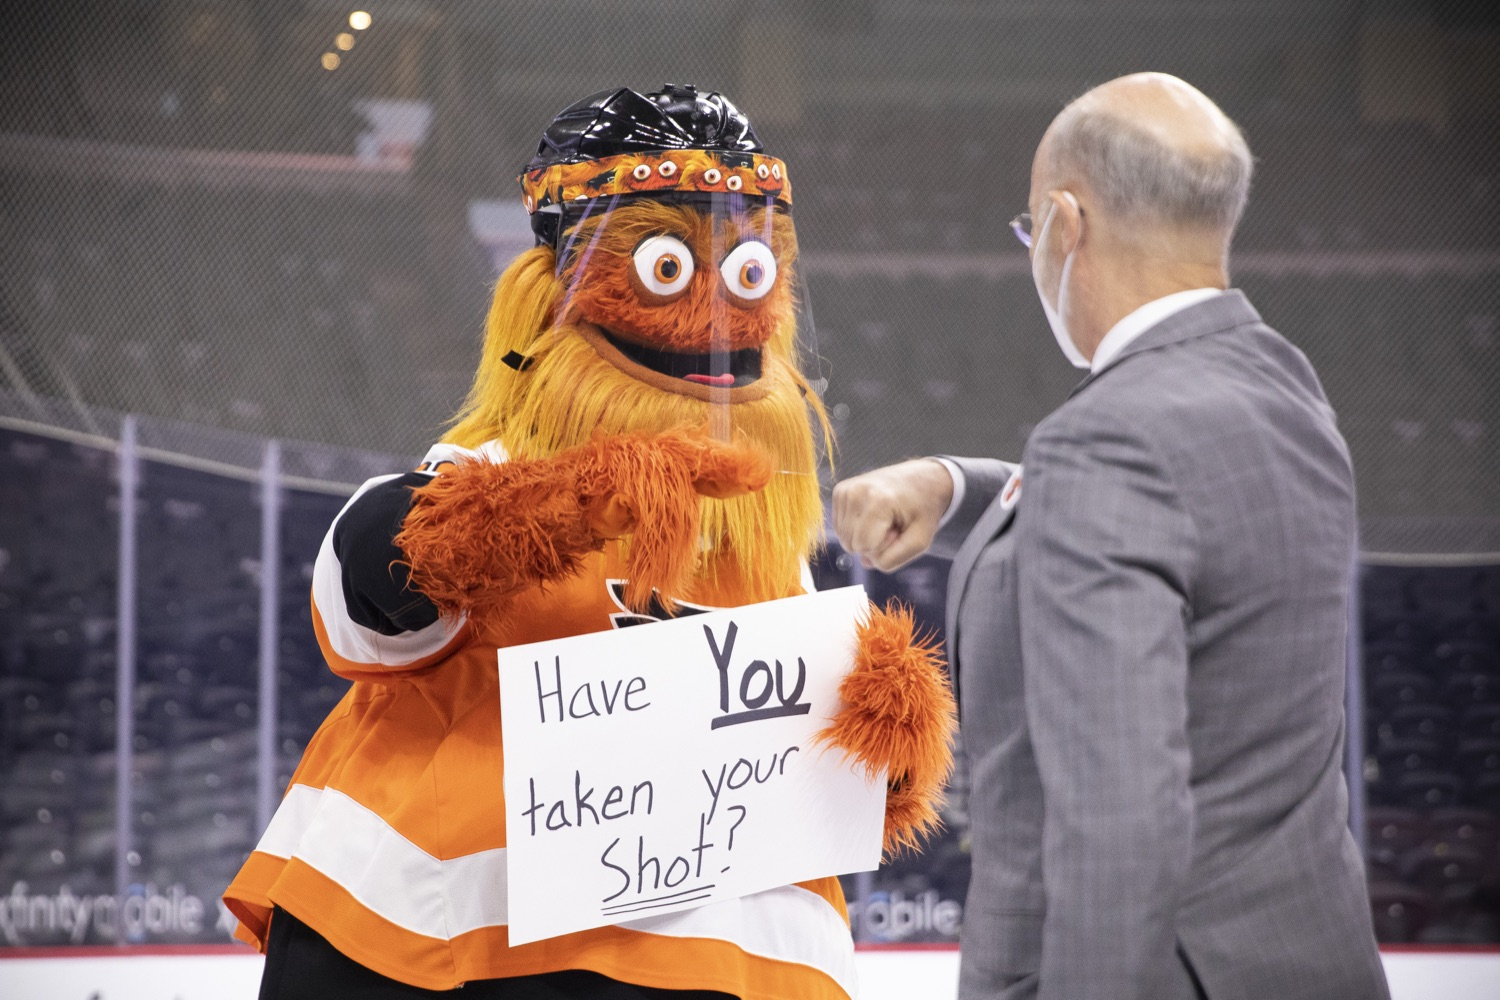 """<a href=""""https://filesource.wostreaming.net/commonwealthofpa/photo/18727_gov_vaccines_dz_006.jpg"""" target=""""_blank"""">⇣Download Photo<br></a>Philadelphia Flyers' mascot Gritty greeting Governor Tom Wolf.   Governor Tom Wolf today visited the Philadelphia Flyers organization at the Wells Fargo Center in Philadelphia to discuss COVID-19 vaccine efforts in Pennsylvania. The Flyers recently launched a comprehensive COVID-19 vaccine campaign, Take Your Shot, encouraging Pennsylvanians to get vaccinated.  Philadelphia, PA  MAY 3, 2021"""